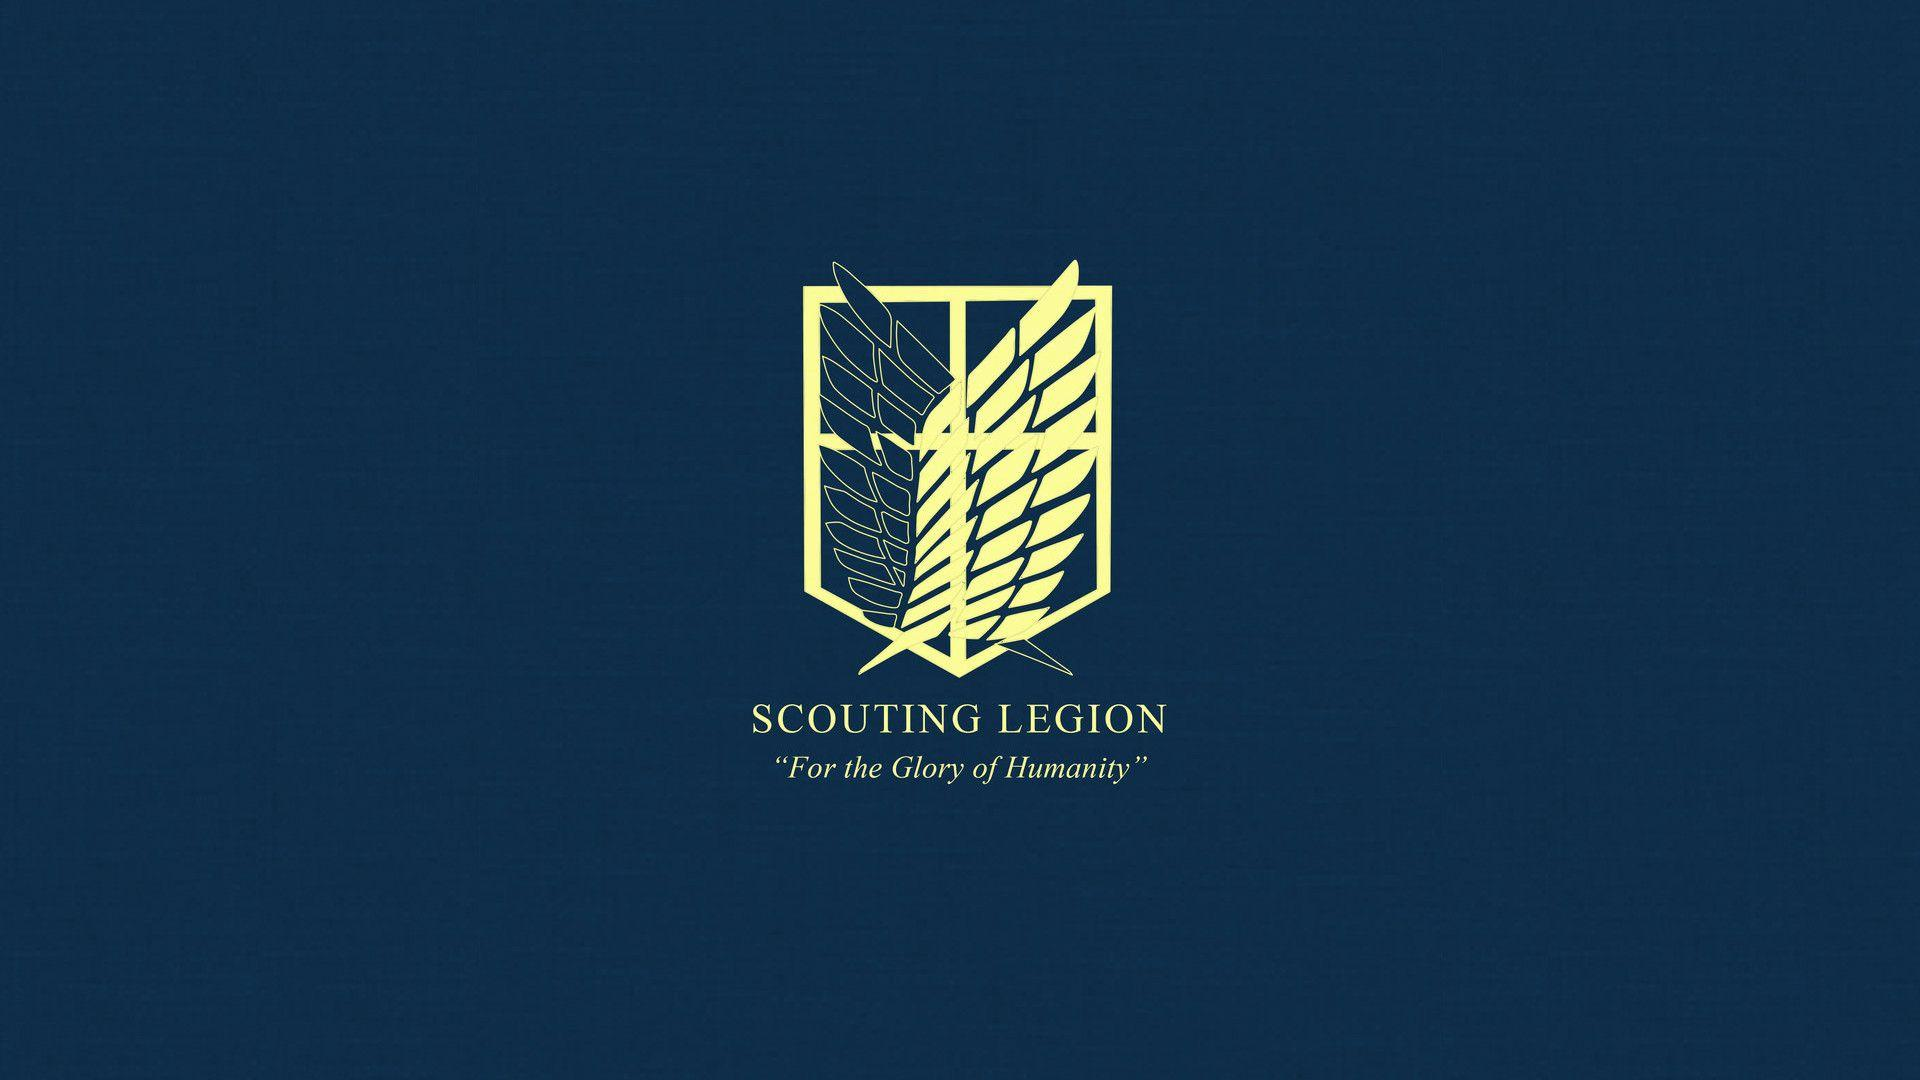 Scouting Legion Wallpapers Wallpaper Cave